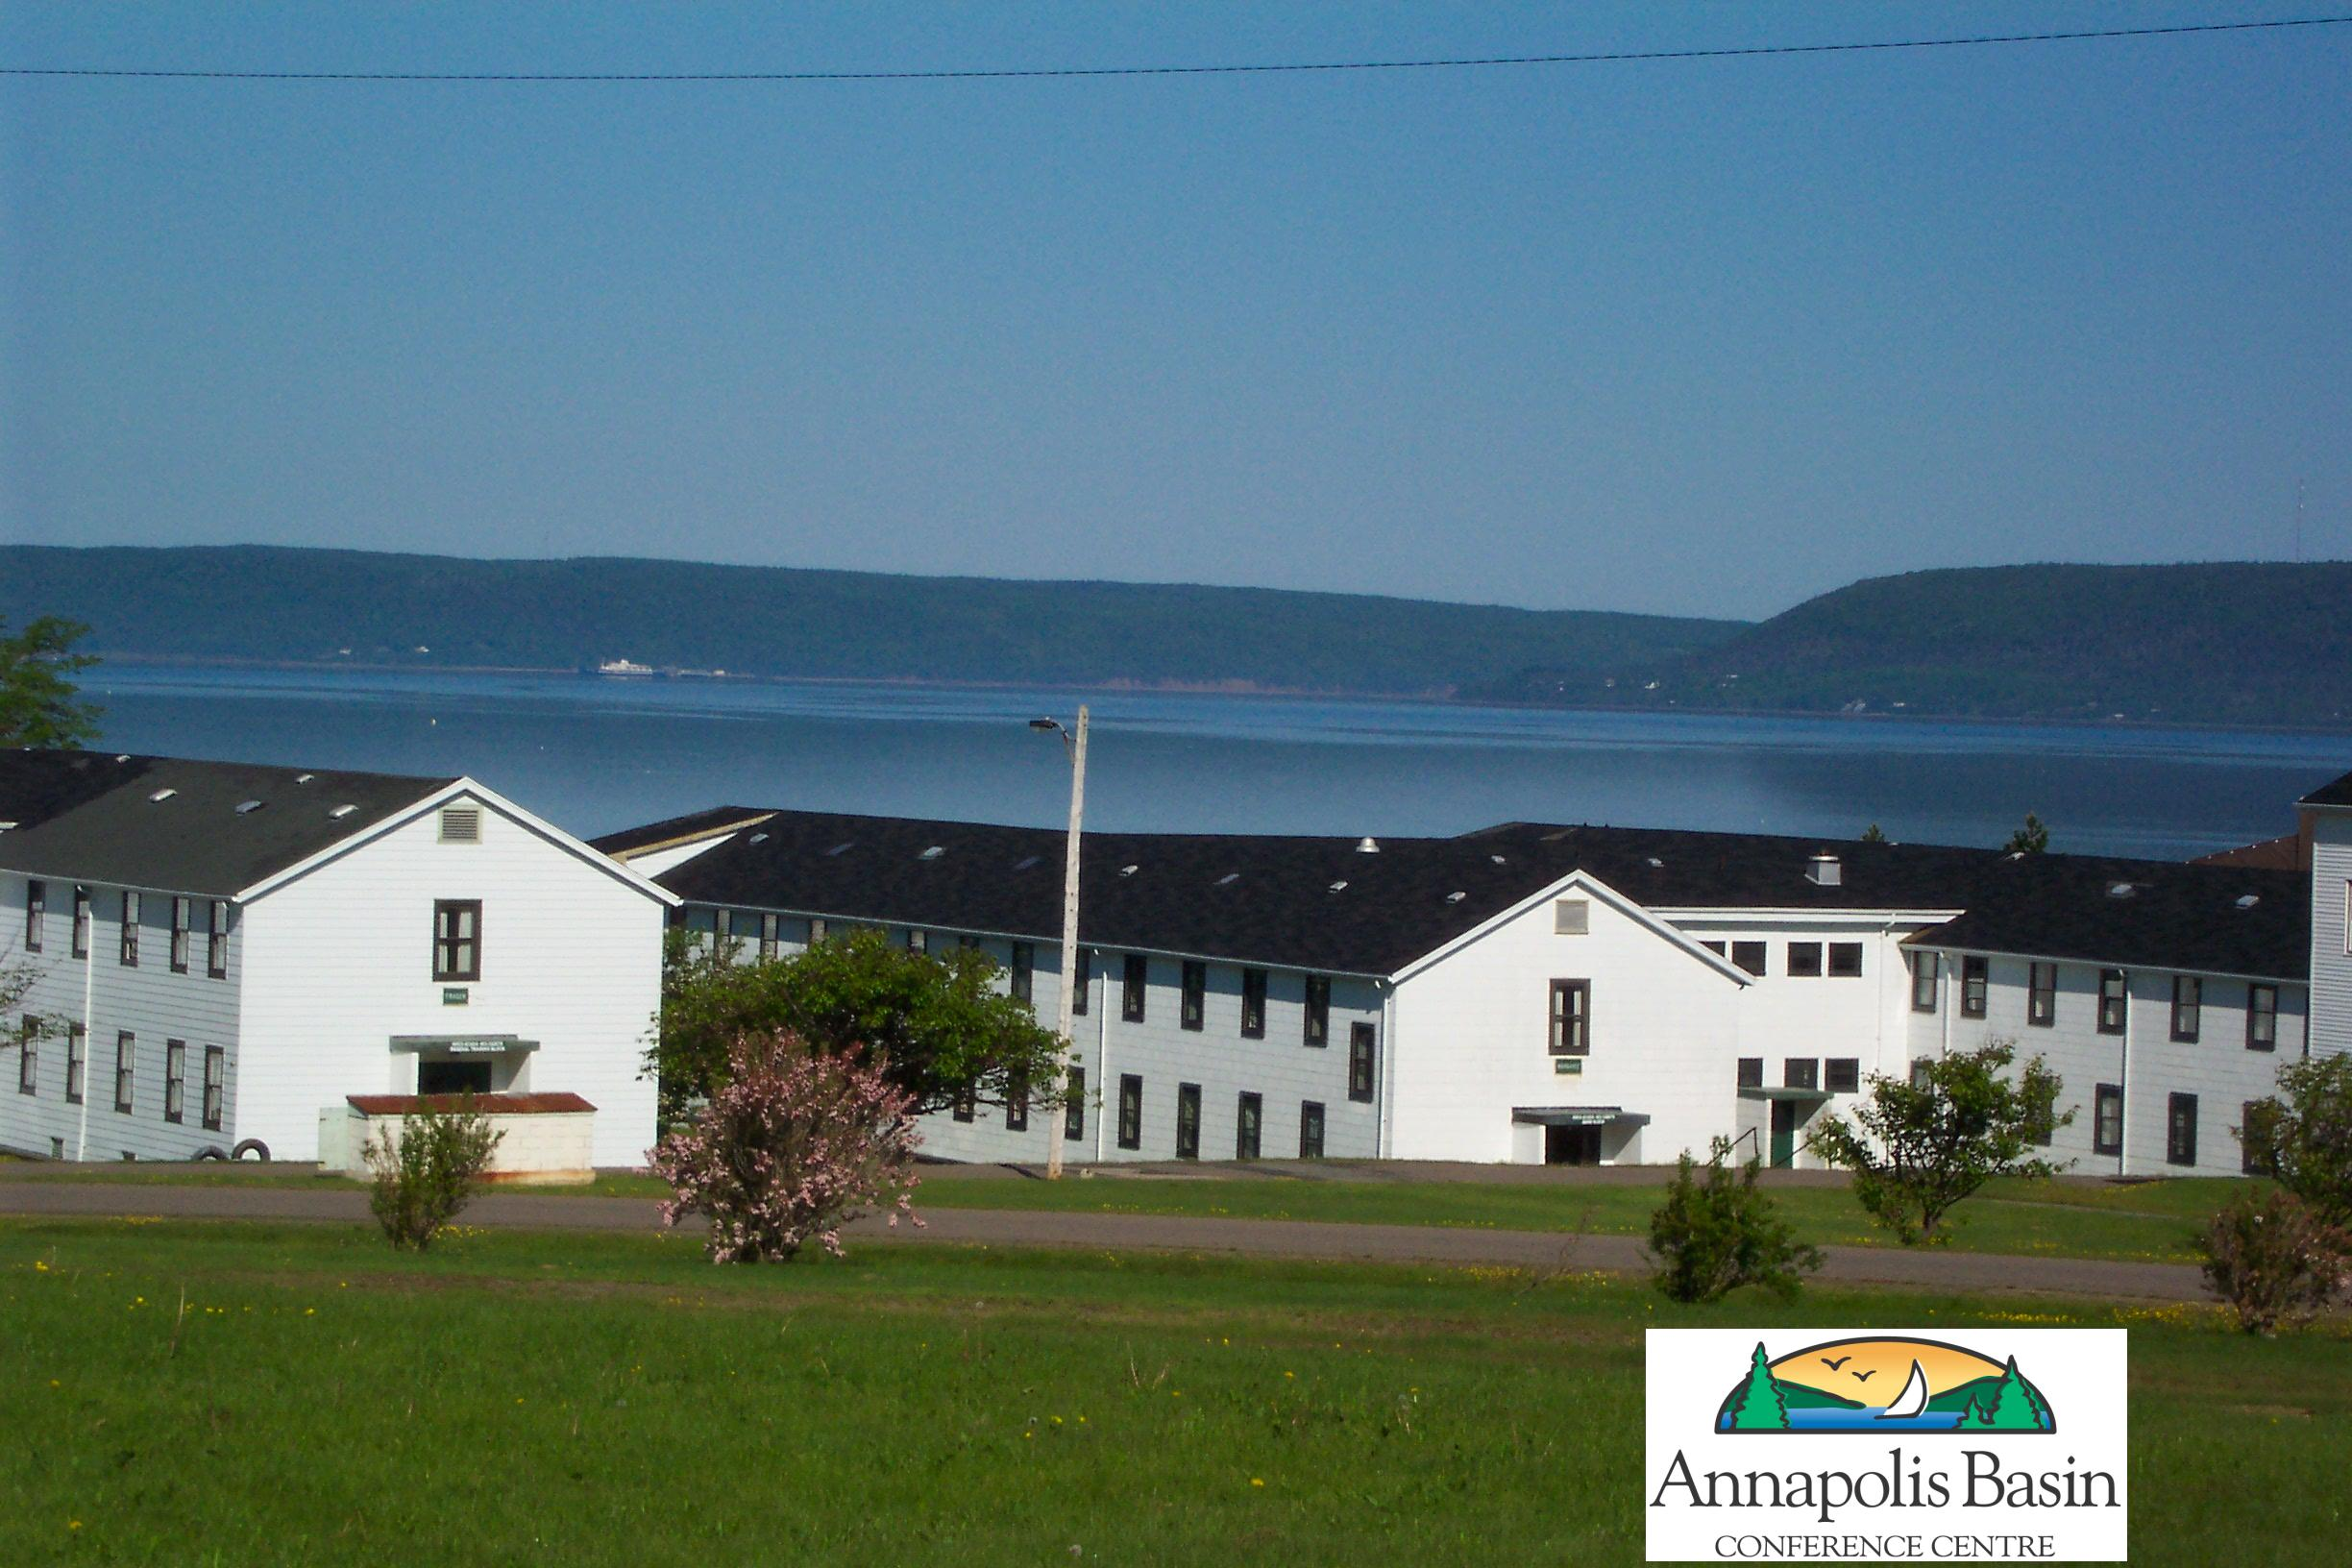 Unique Facilities- Annapolis Basin Conference Centre